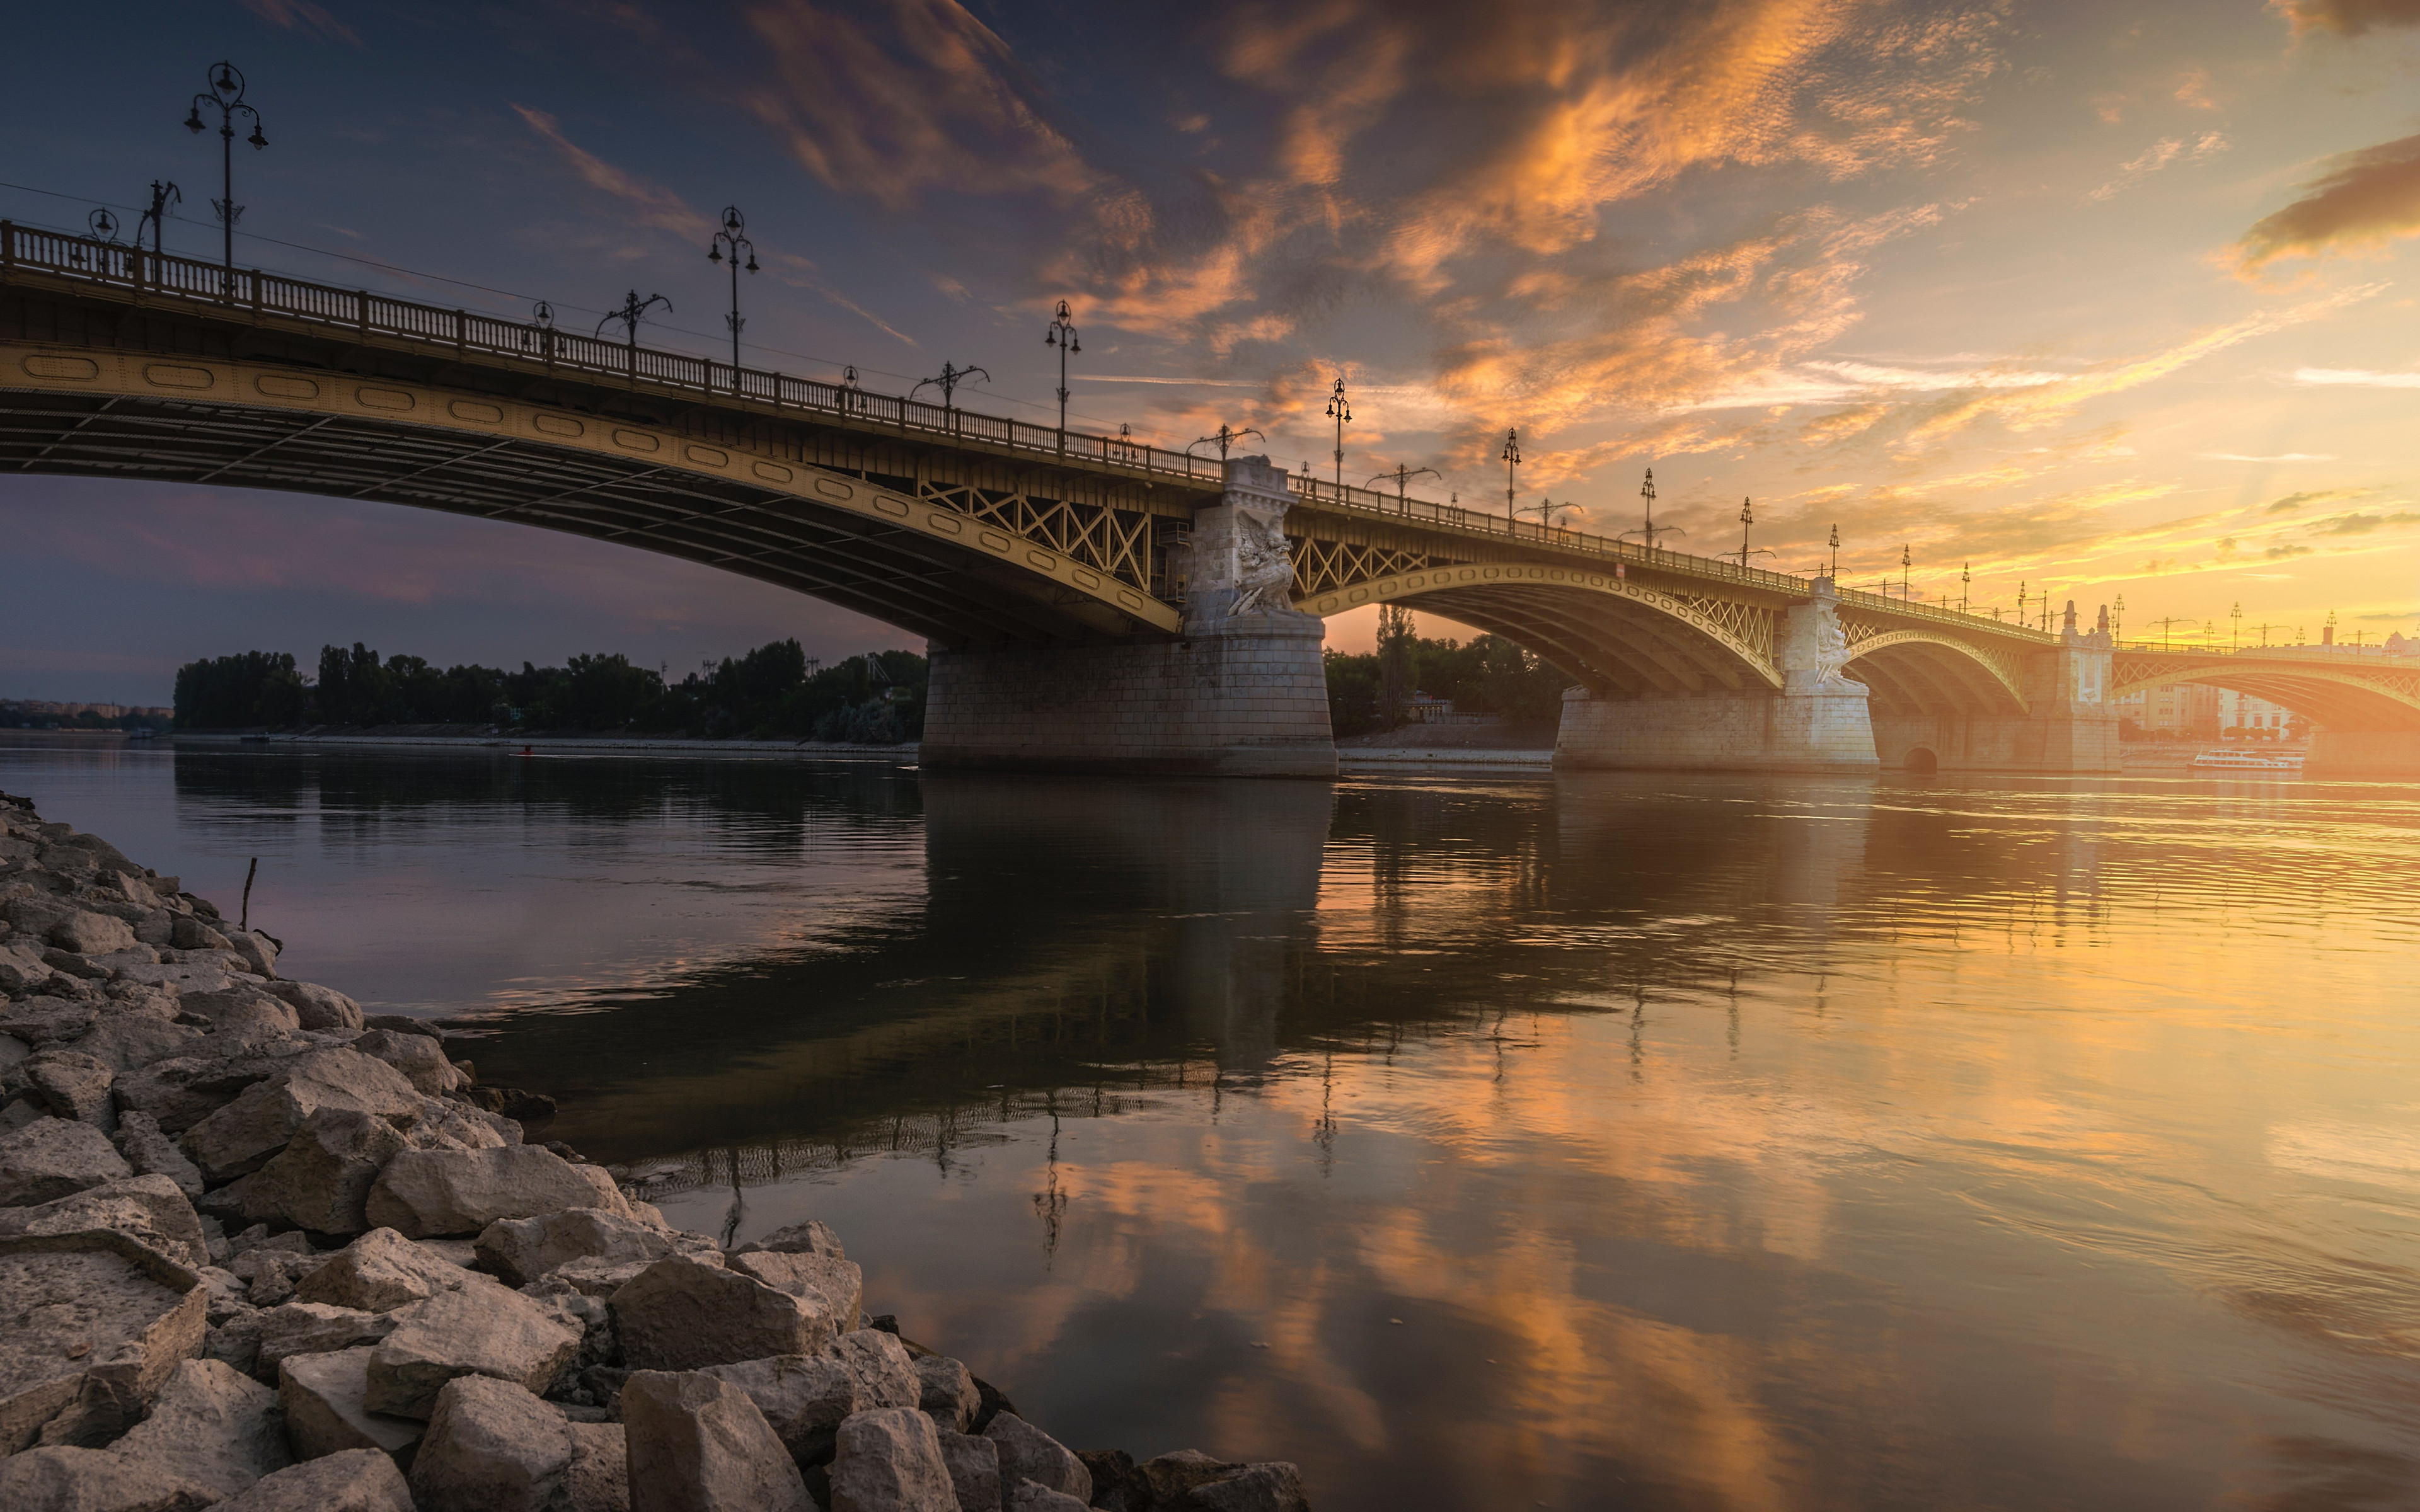 Margaret Bridge over Danube river wallpaper 3840x2400